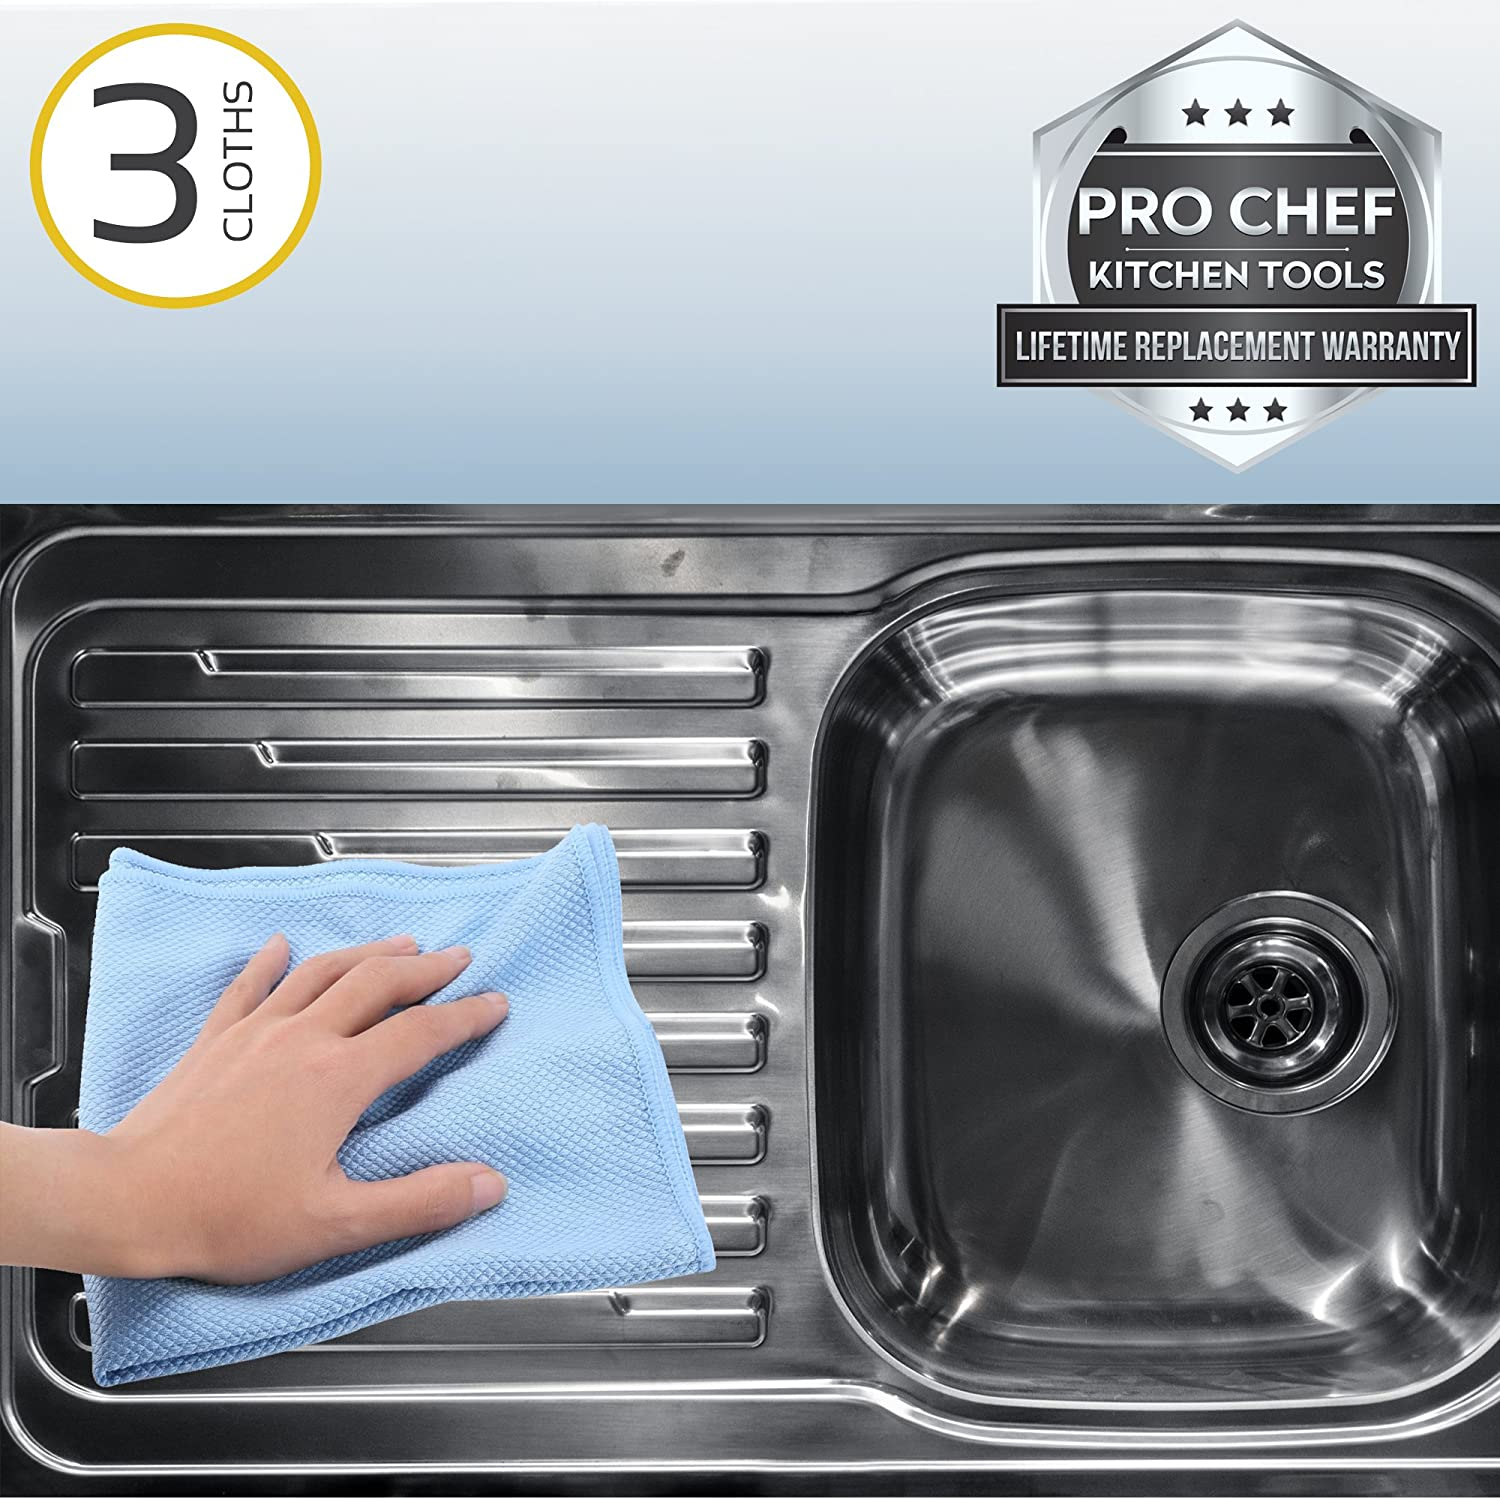 Polish Clean Stainless Steel Sinks Streak Free Window Glass And Bathroom Mirrors Shine Sinks Wet Dry Towel Set 3 Household Wipes And Cloths Pro Chef Kitchen Tools Microfiber Cleaning Cloth